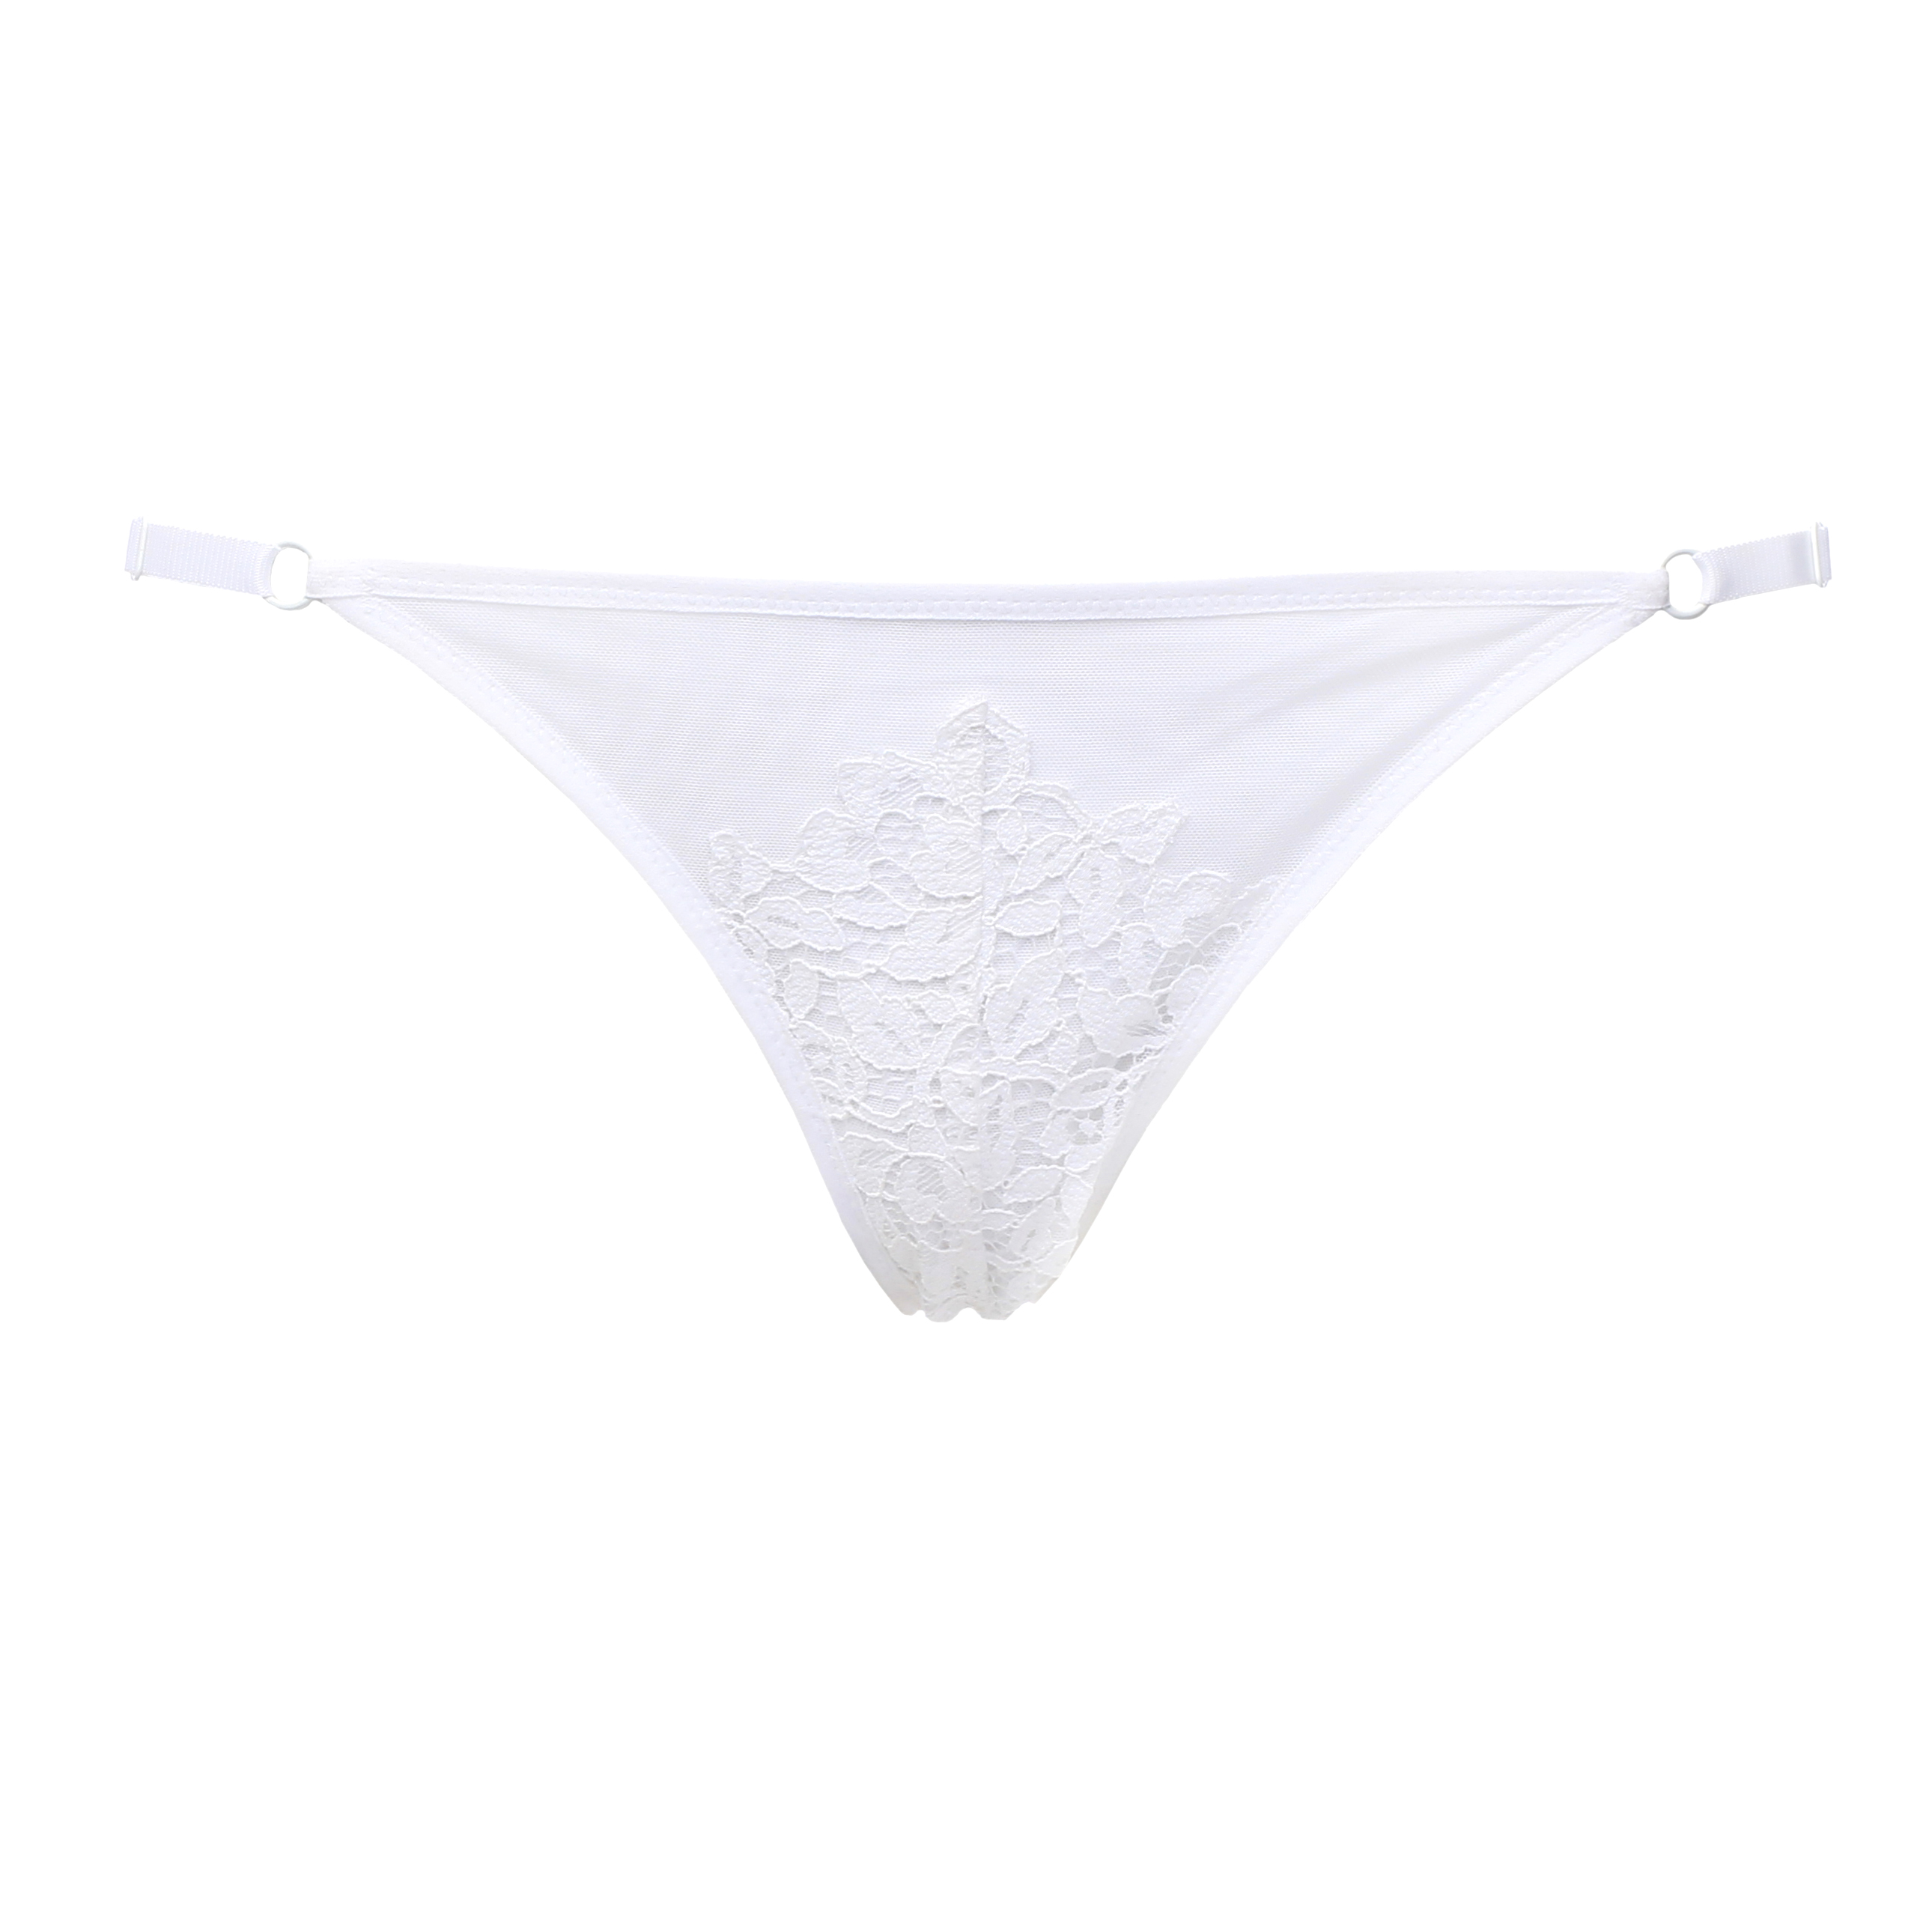 White Mesh Triangle Panties With White Lace